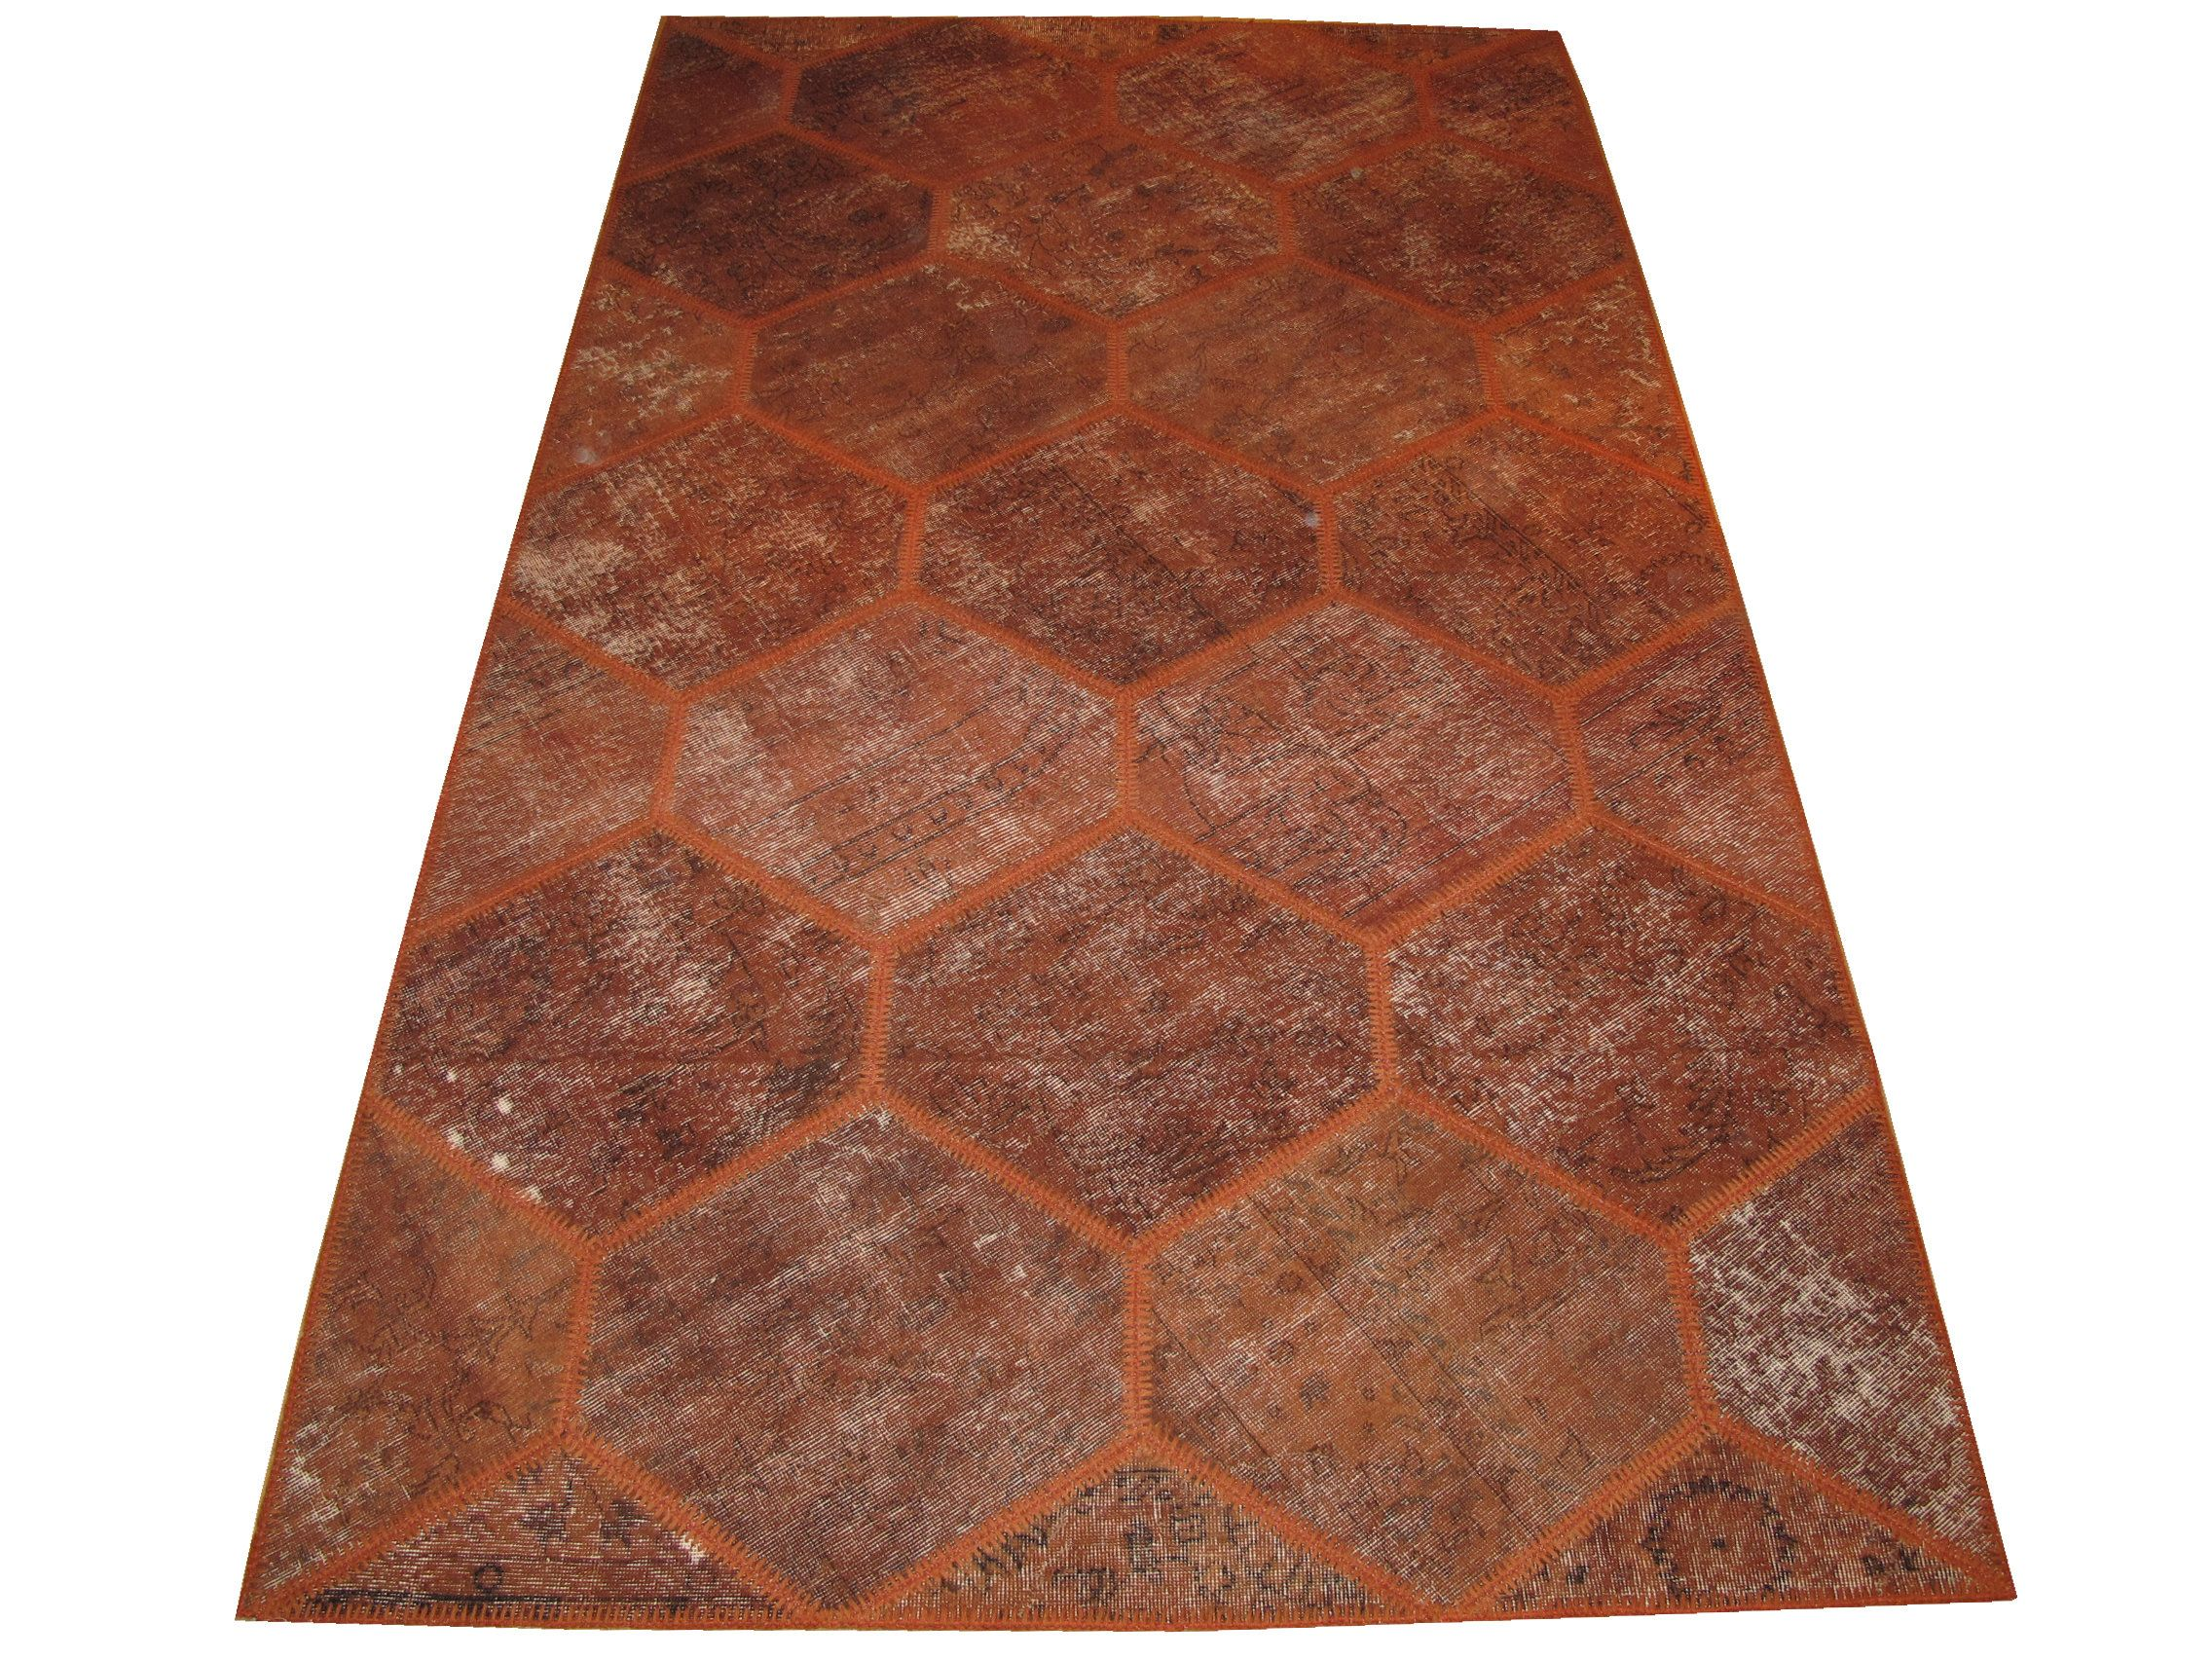 Honeycomb Design Patchwork Carpet Made With Brickred Color Overdyed Rugs 118x70 Inches 300x178 Cm 9 10 X5 10 Feet 2020